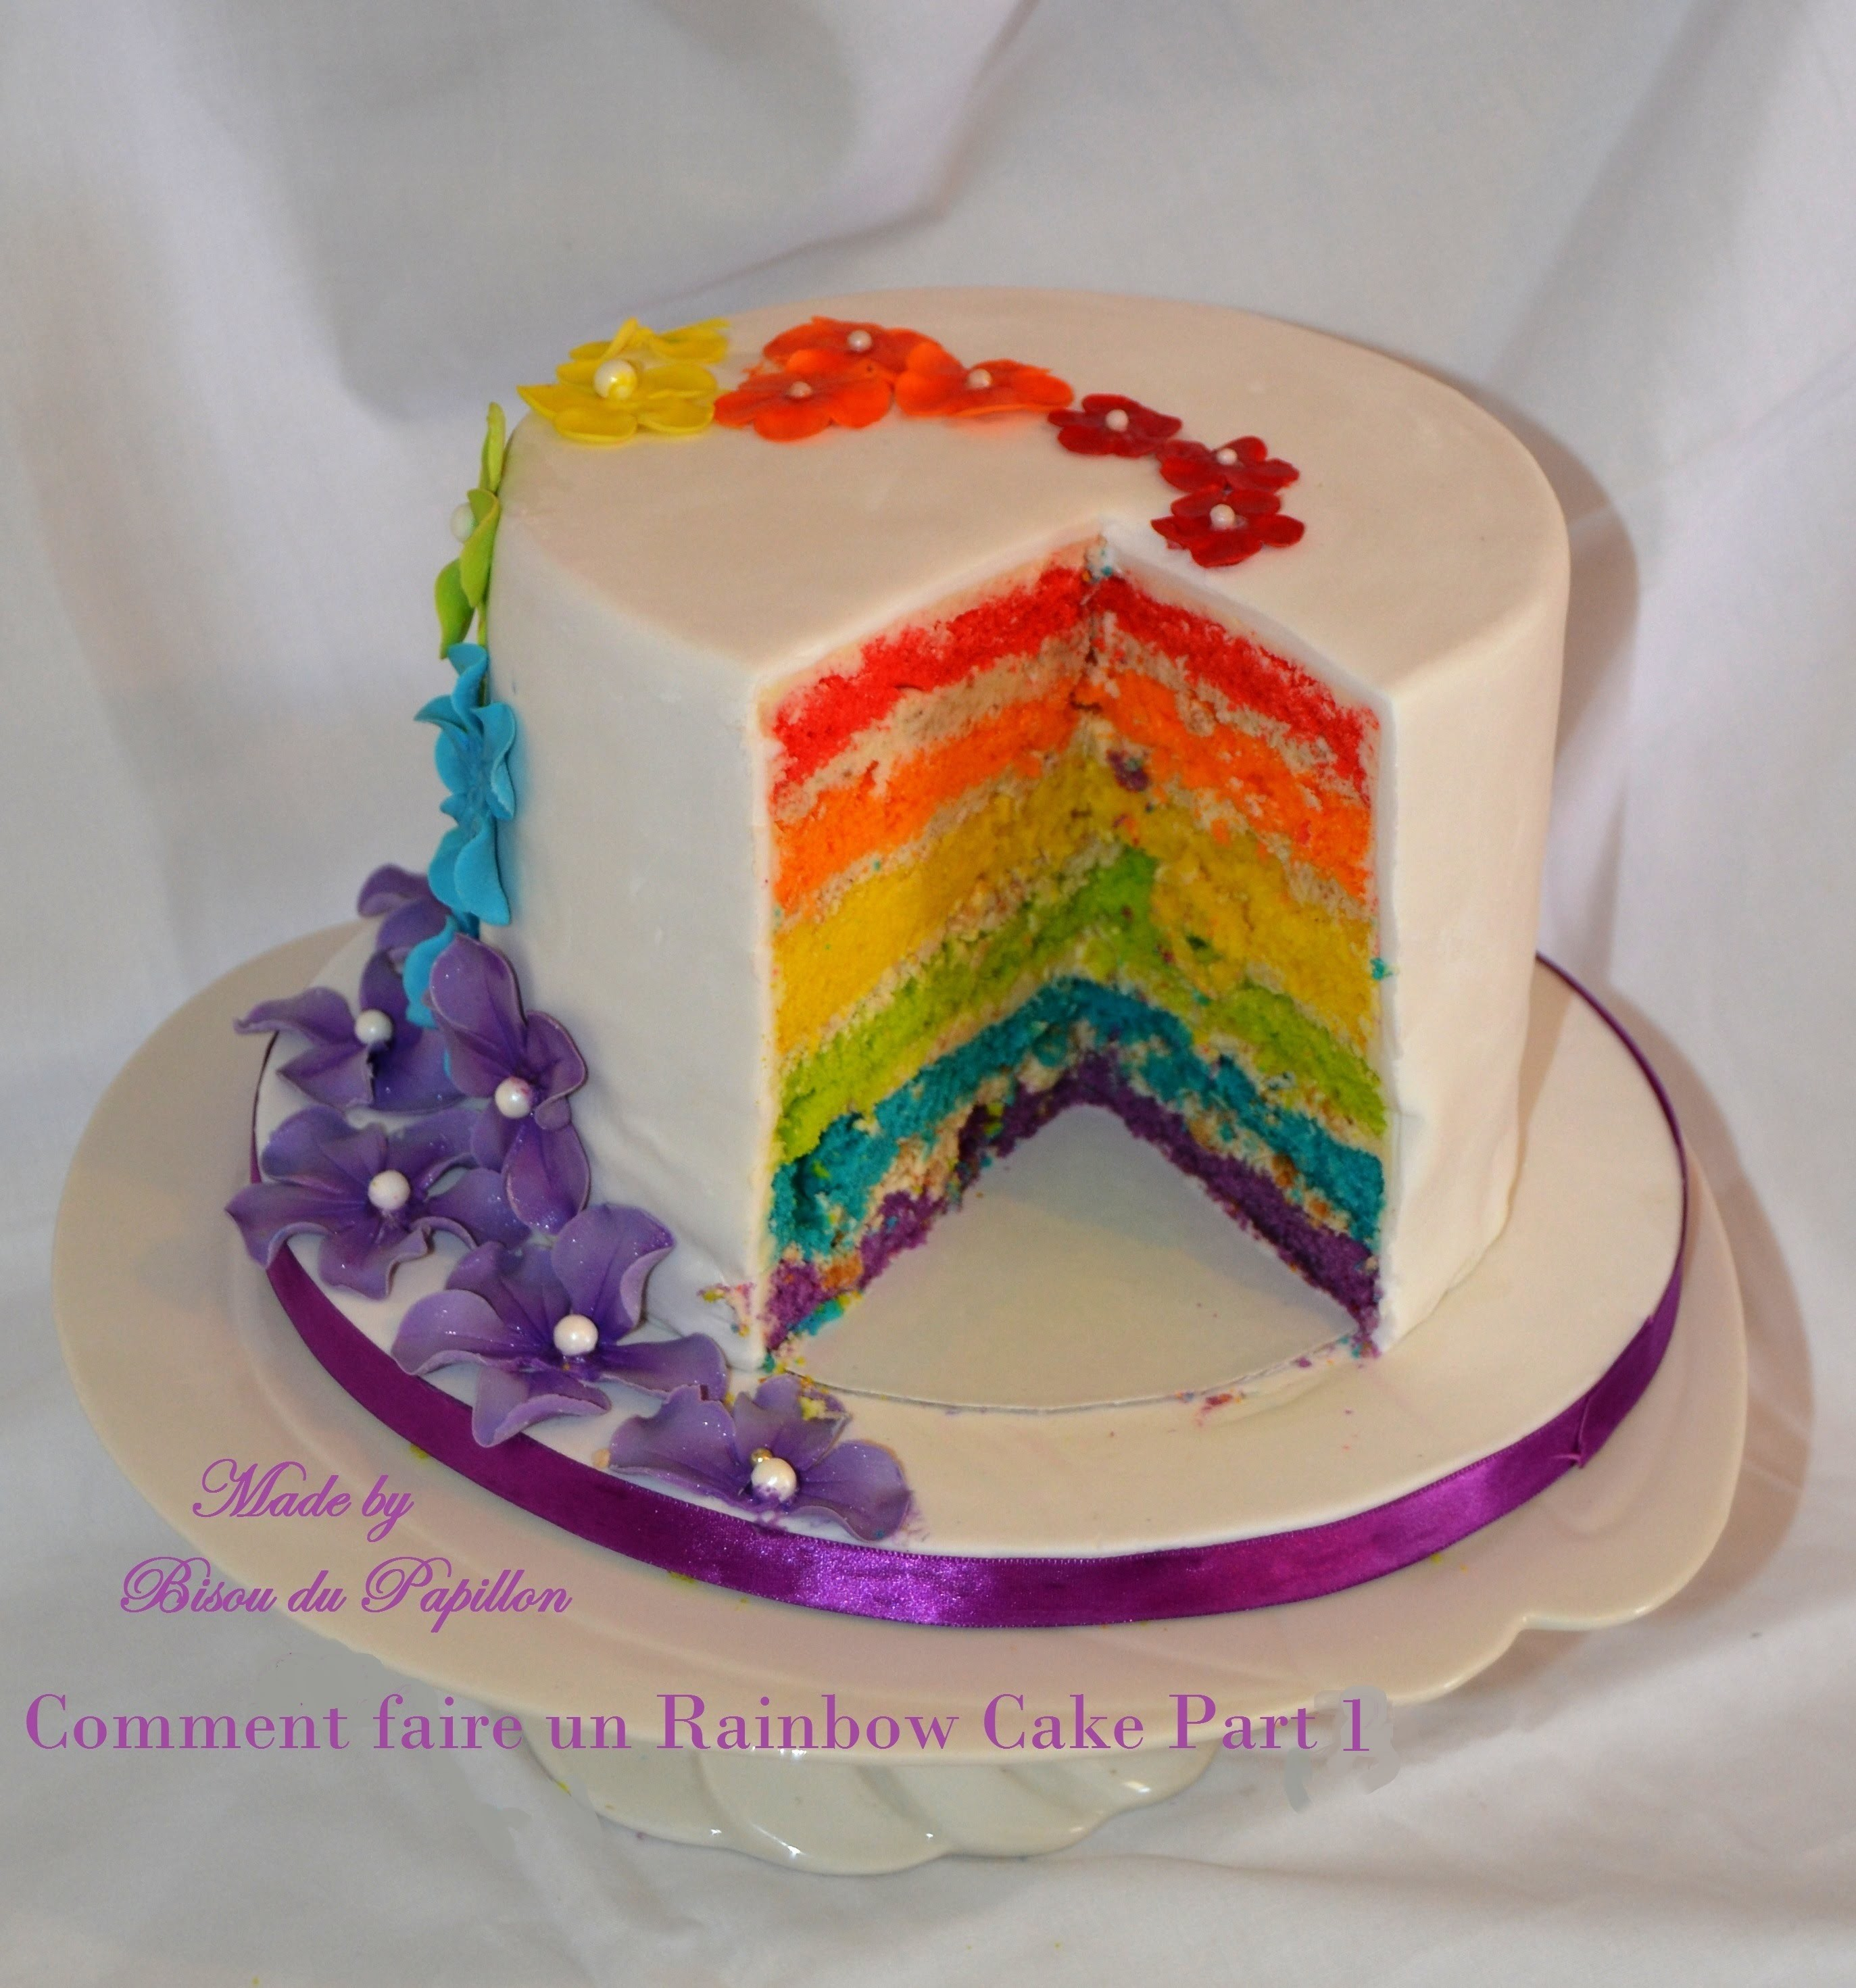 Comment faire un Rainbow Cake Part 1